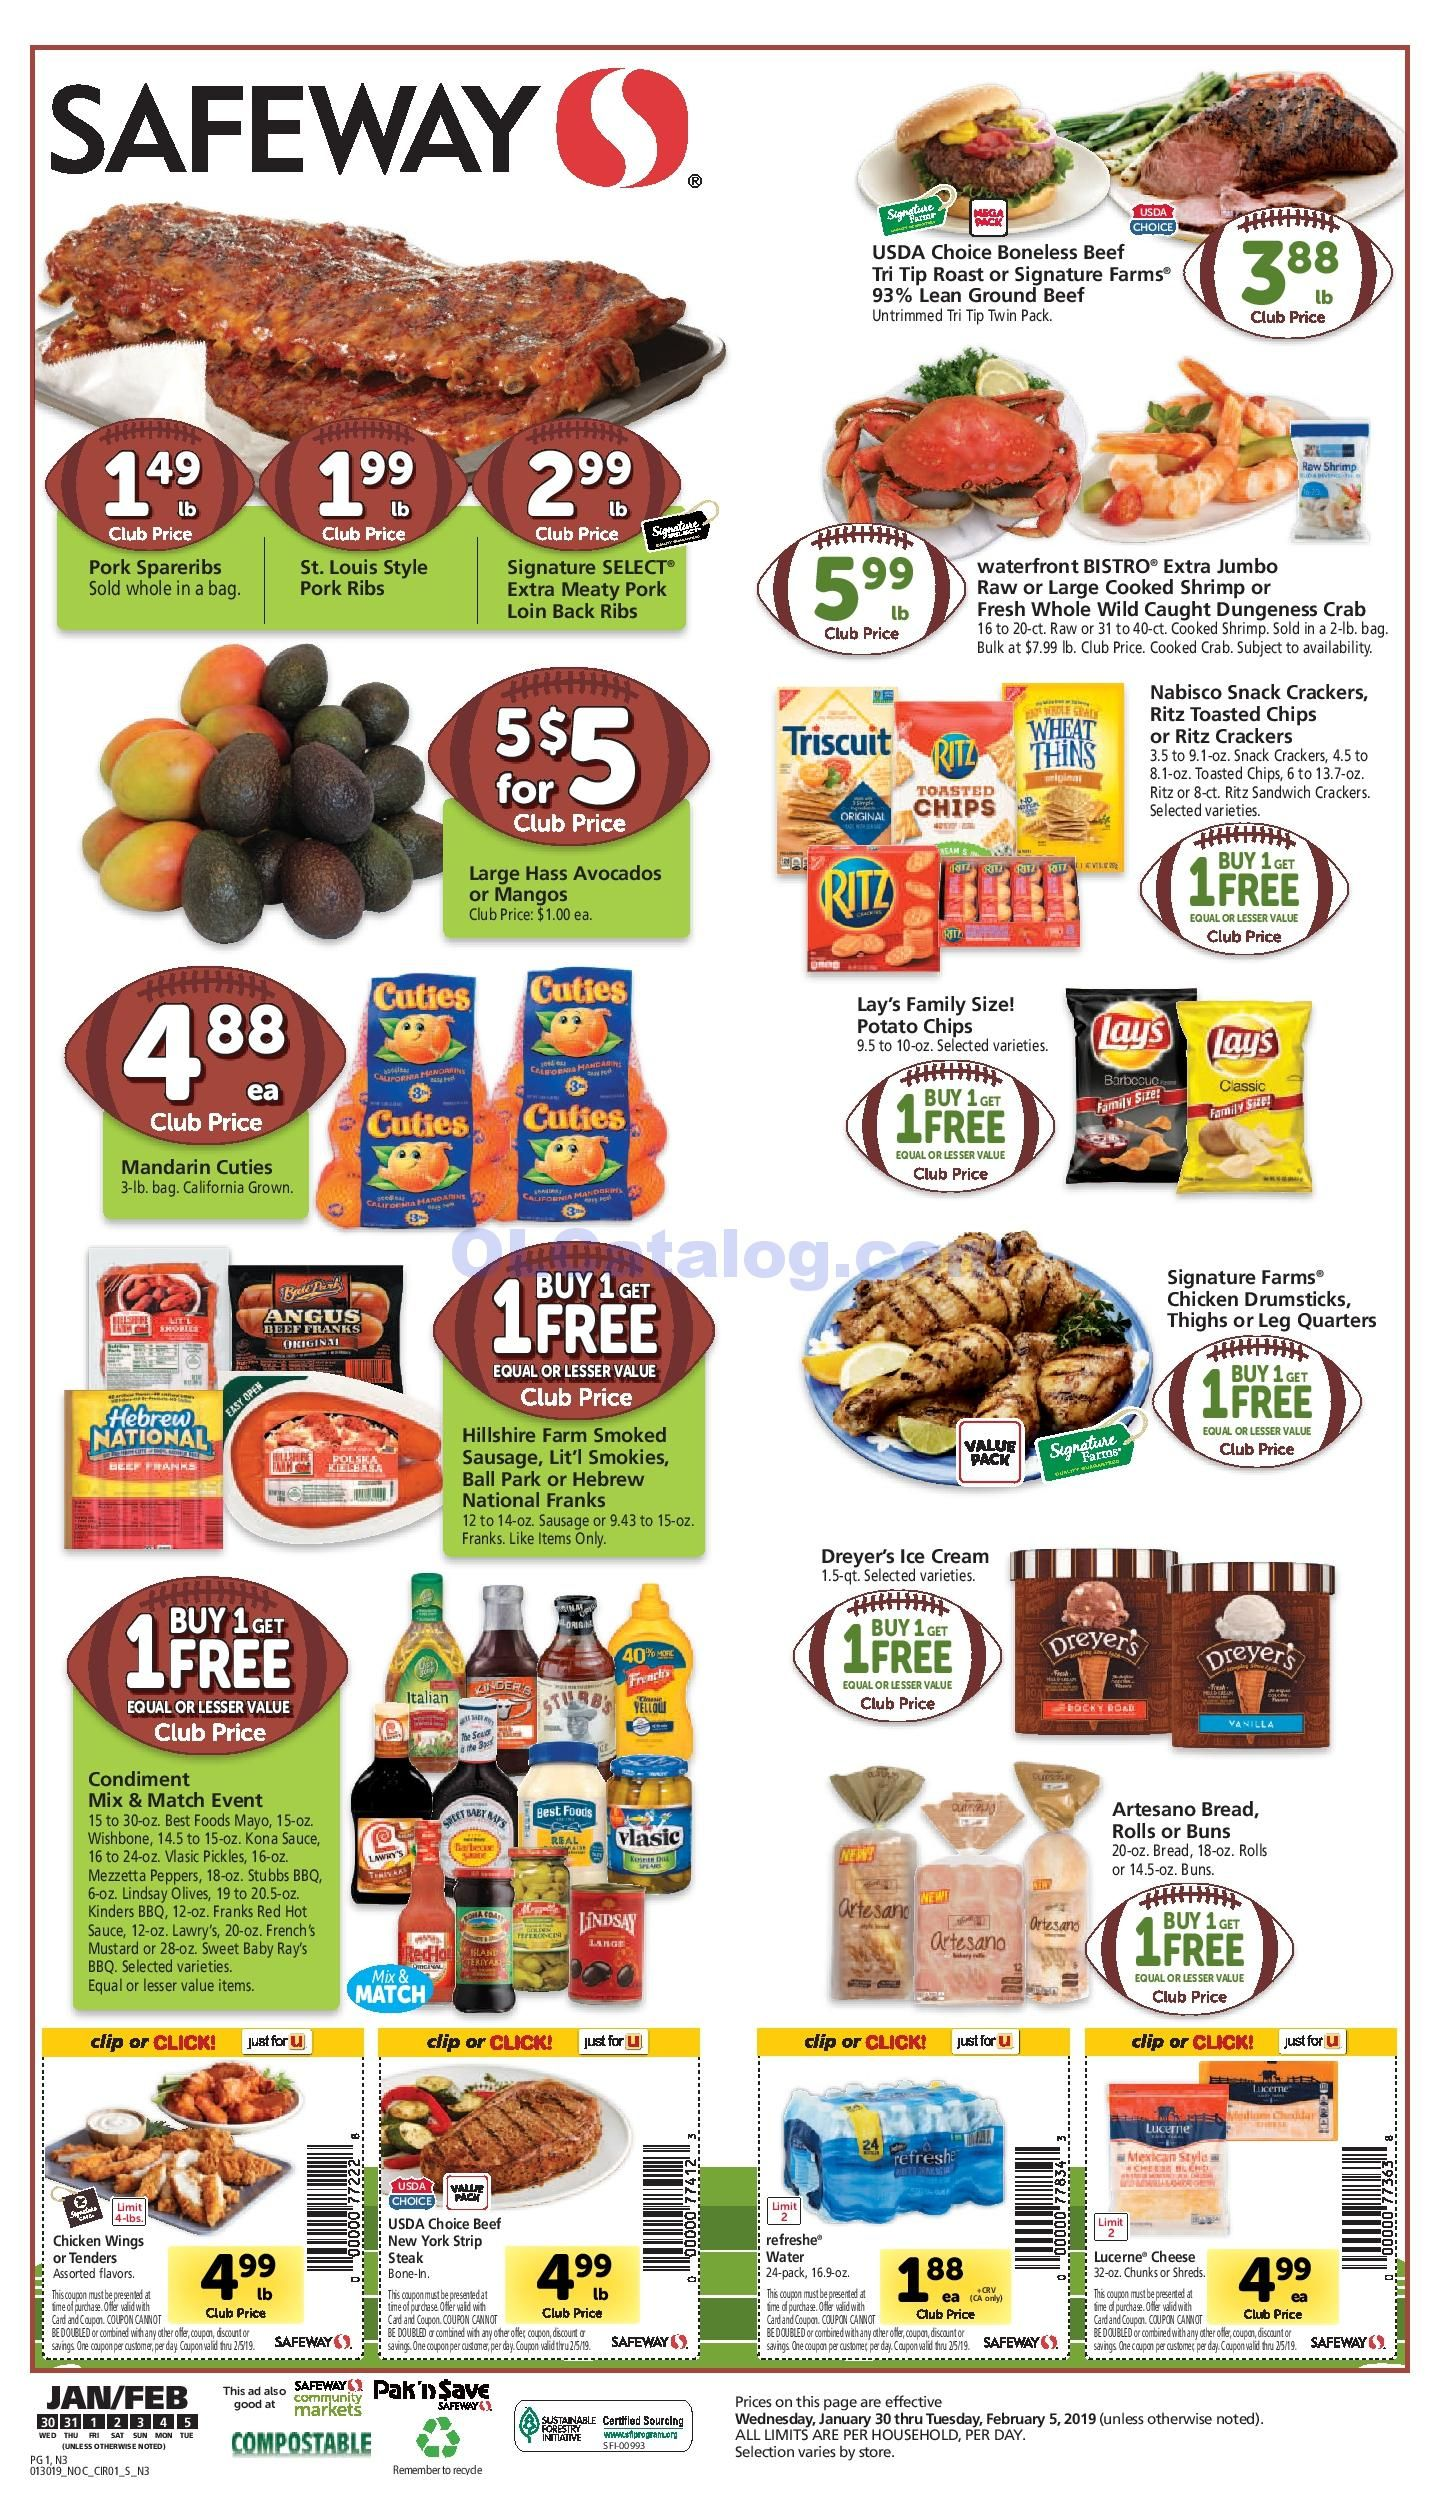 Safeway Weekly ad January 30 February 5, 2019. Find